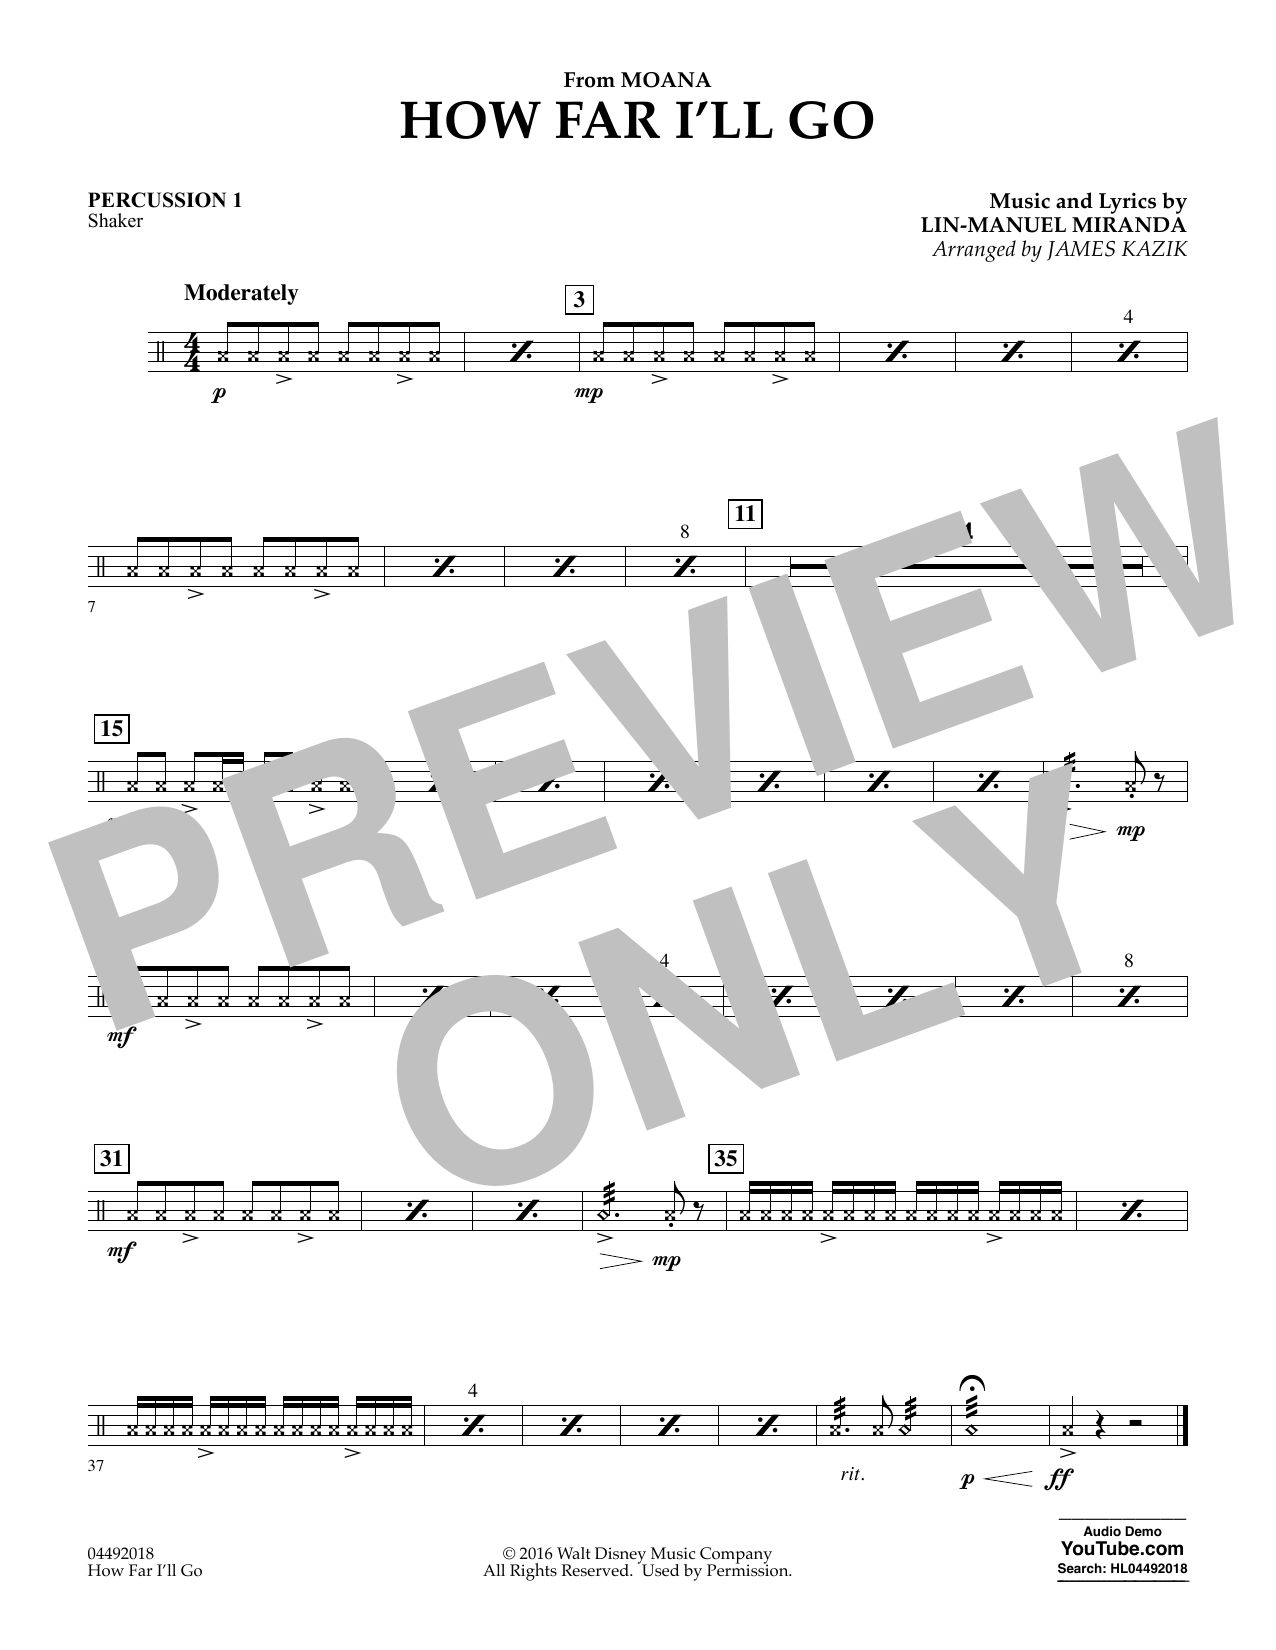 James Kazik How Far I'll Go (from Moana) - Percussion 1 sheet music notes and chords. Download Printable PDF.